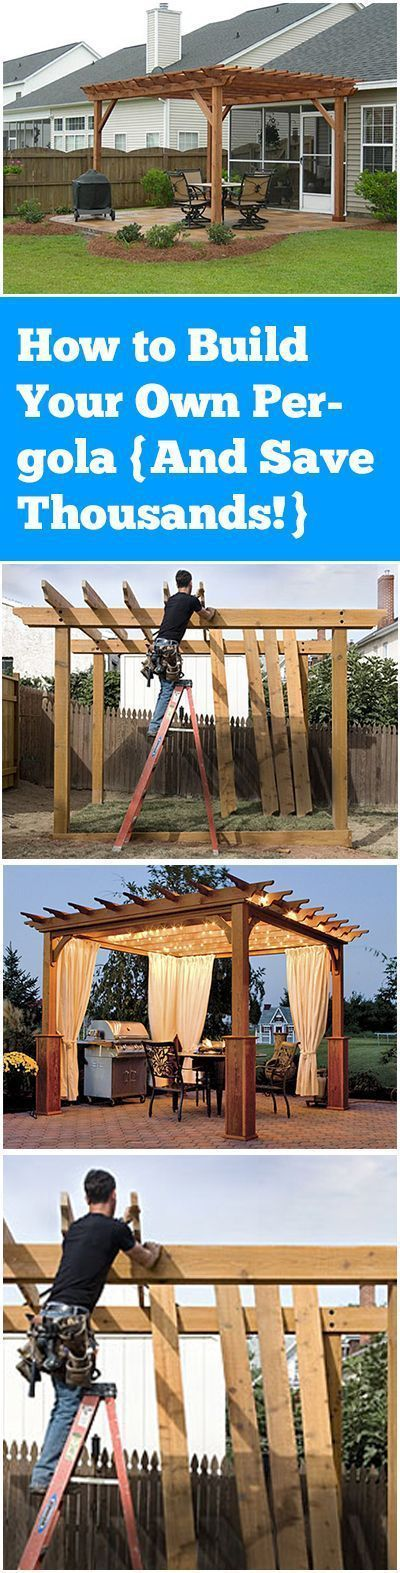 This would be so fun to have in the summer time! How to Build Your Own Pergola!